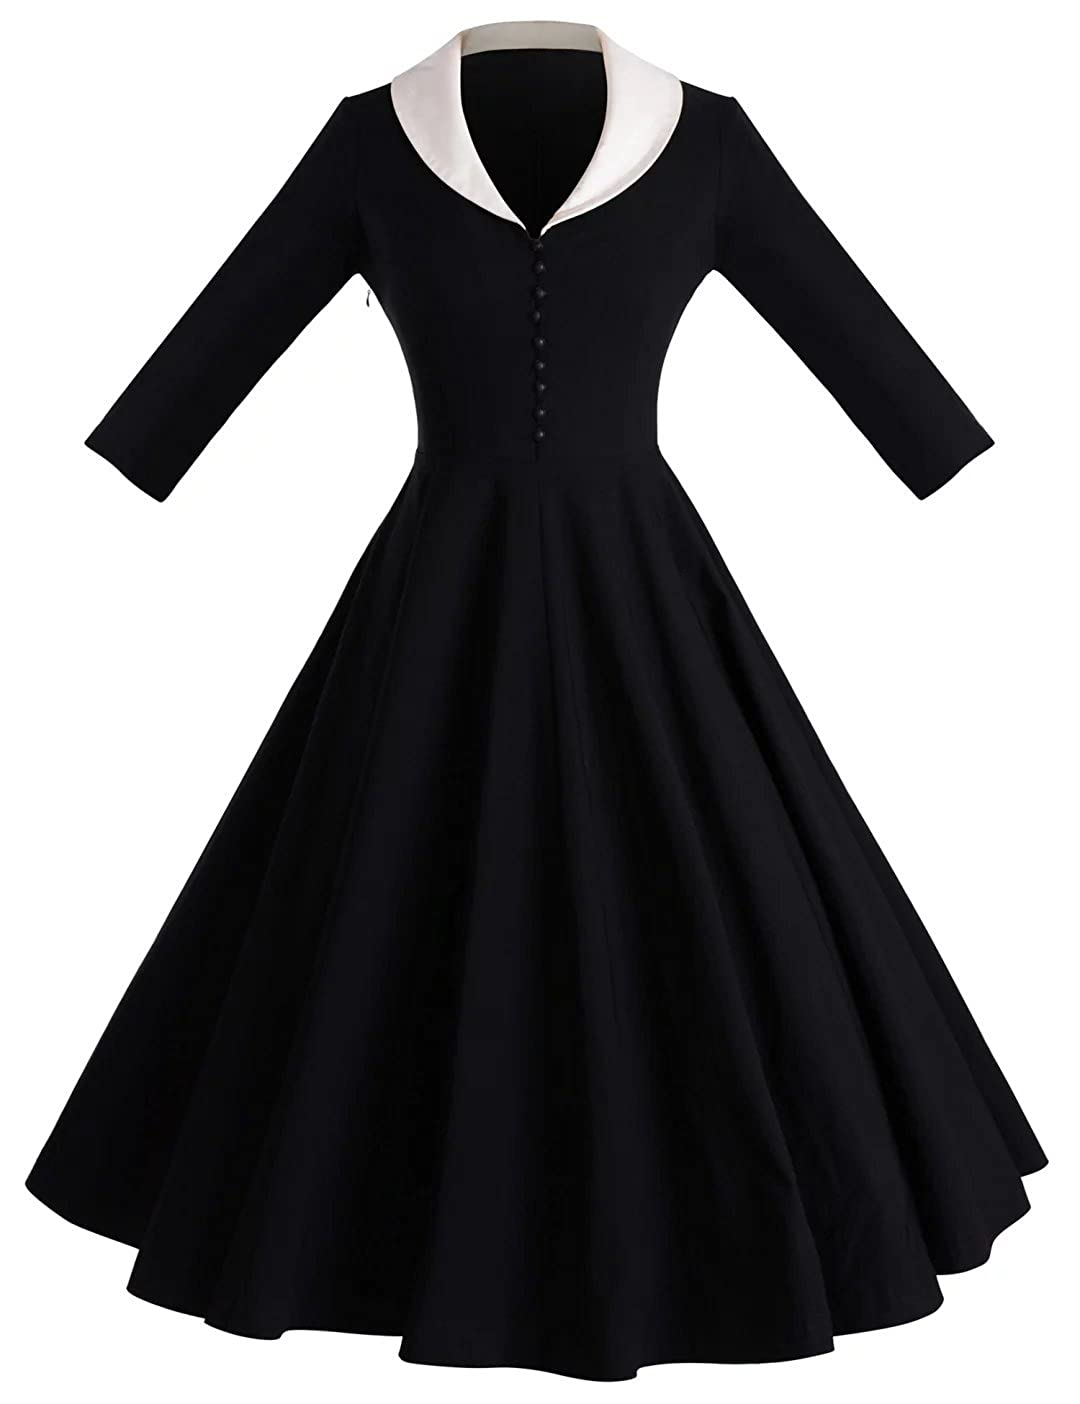 500 Vintage Style Dresses for Sale | Vintage Inspired Dresses GownTown Womens 1950s Cape Collar Vintage Swing Stretchy Dresses $35.99 AT vintagedancer.com